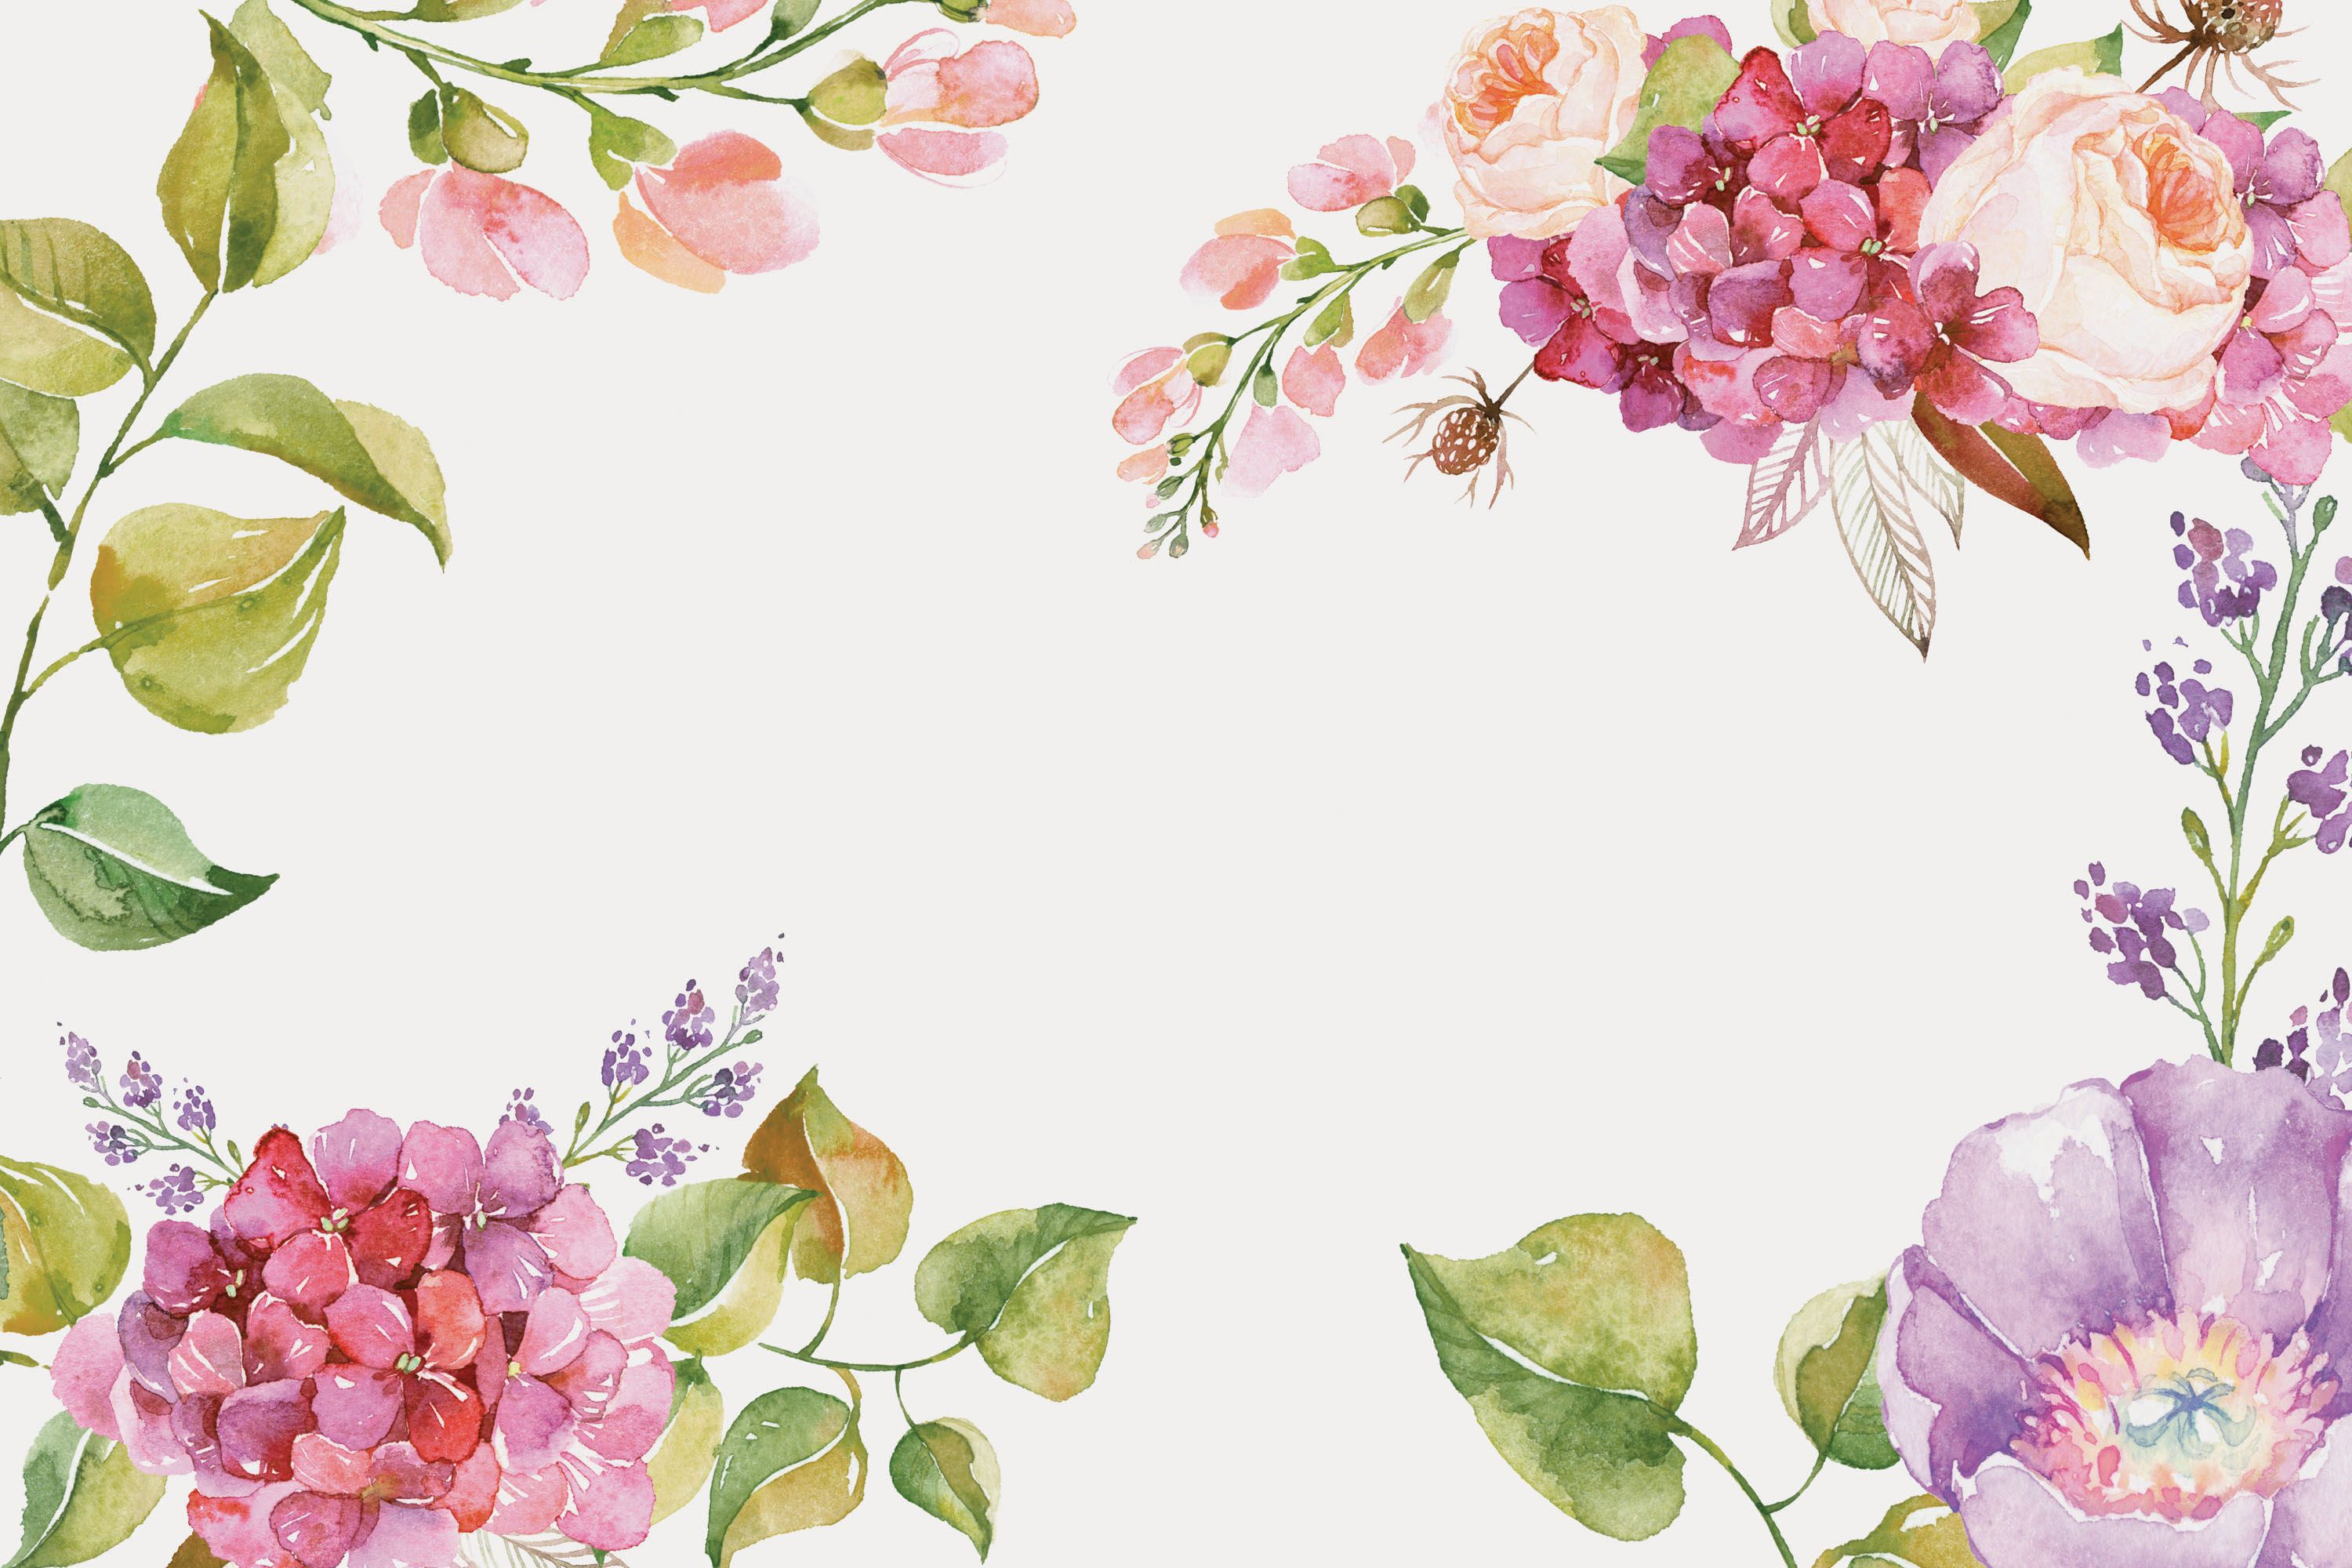 Posters Floral Watercolor Background In 2020 Floral Watercolor